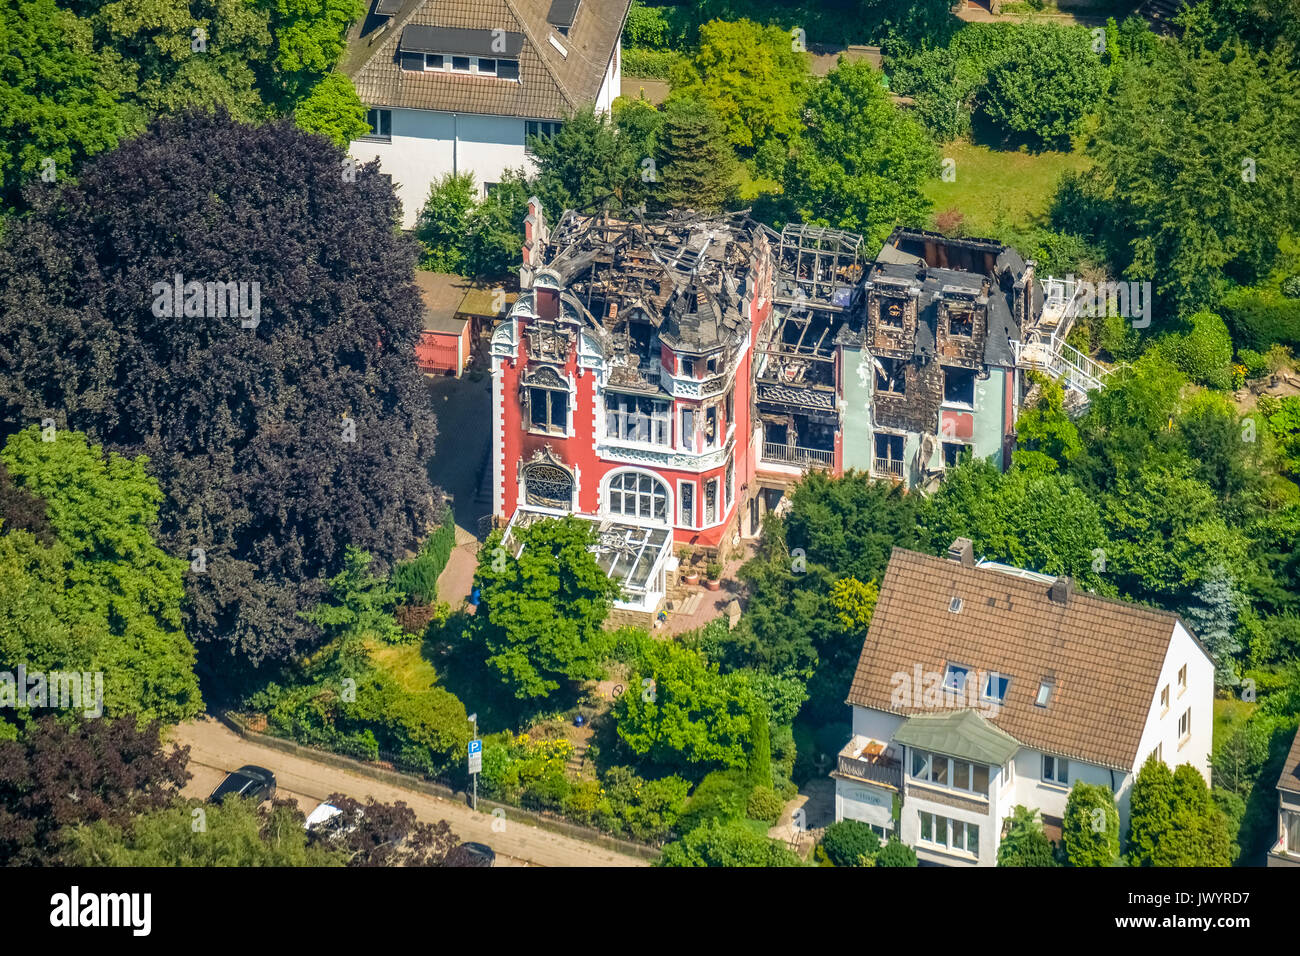 Fliesen Bad Pyrmont Jugendstilvilla Stockfotos And Jugendstilvilla Bilder Alamy